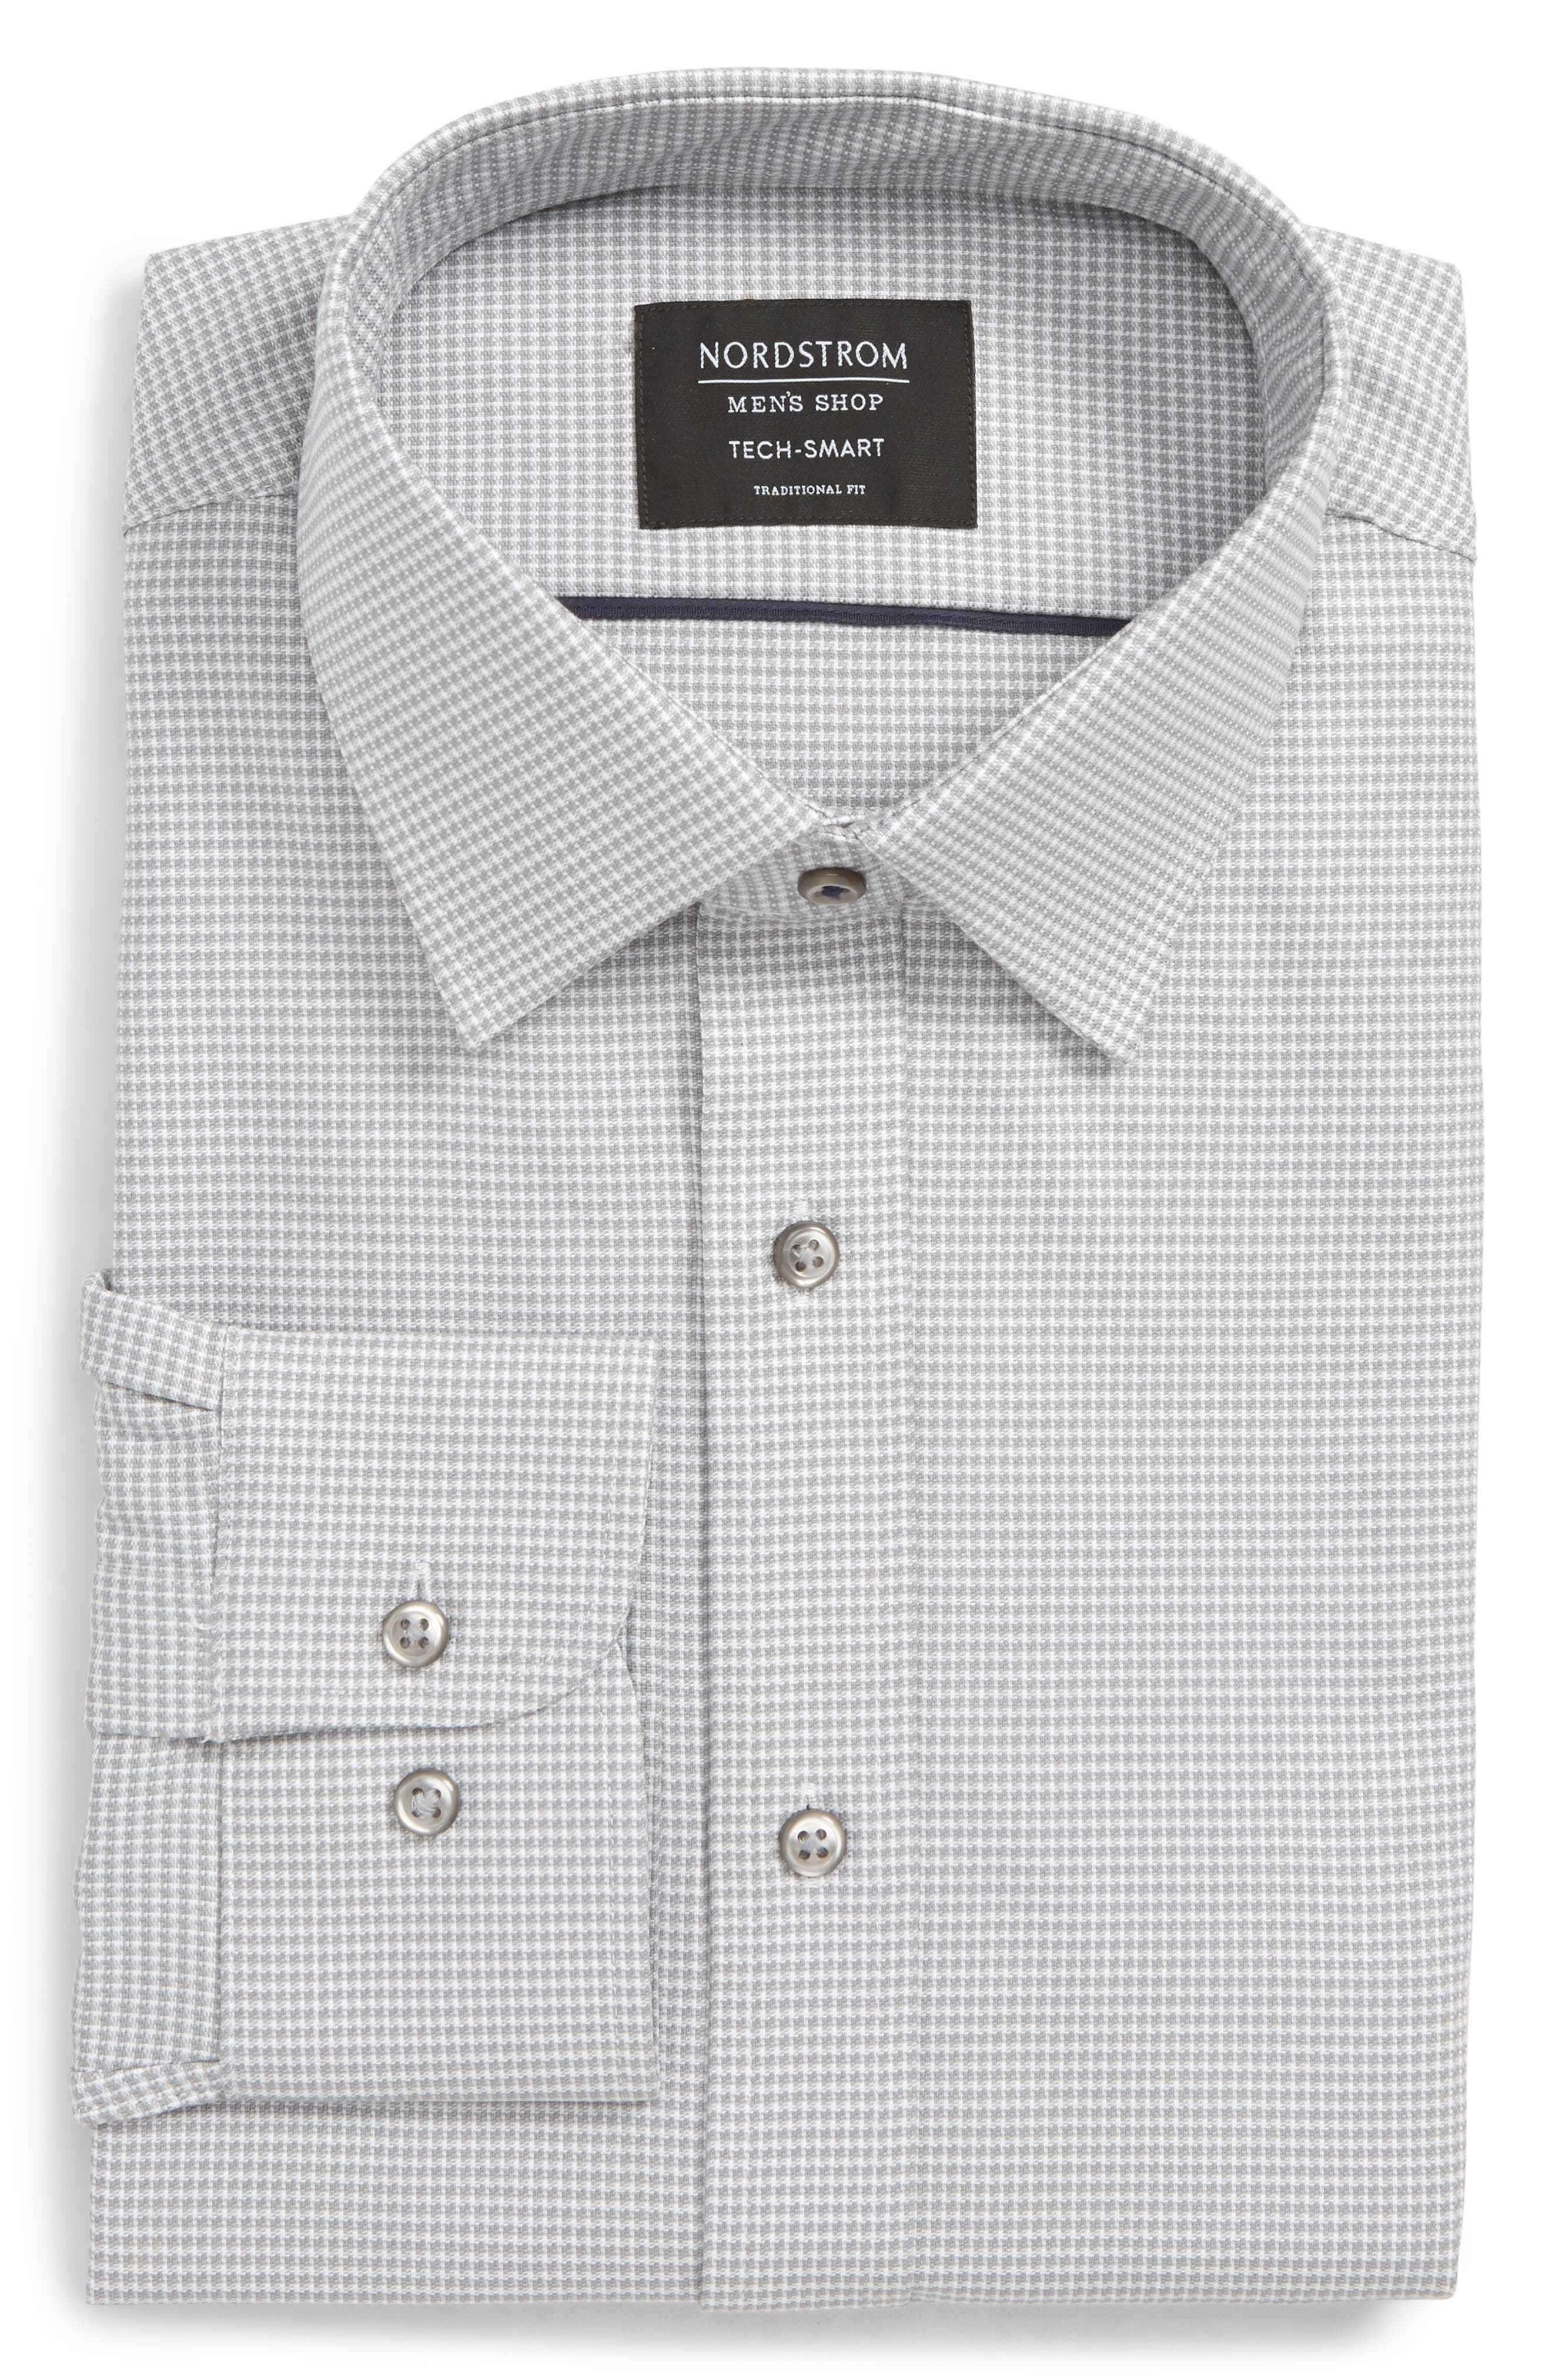 Tech-Smart Traditional Fit Stretch Solid Dress Shirt, Main, color, GREY SLEET